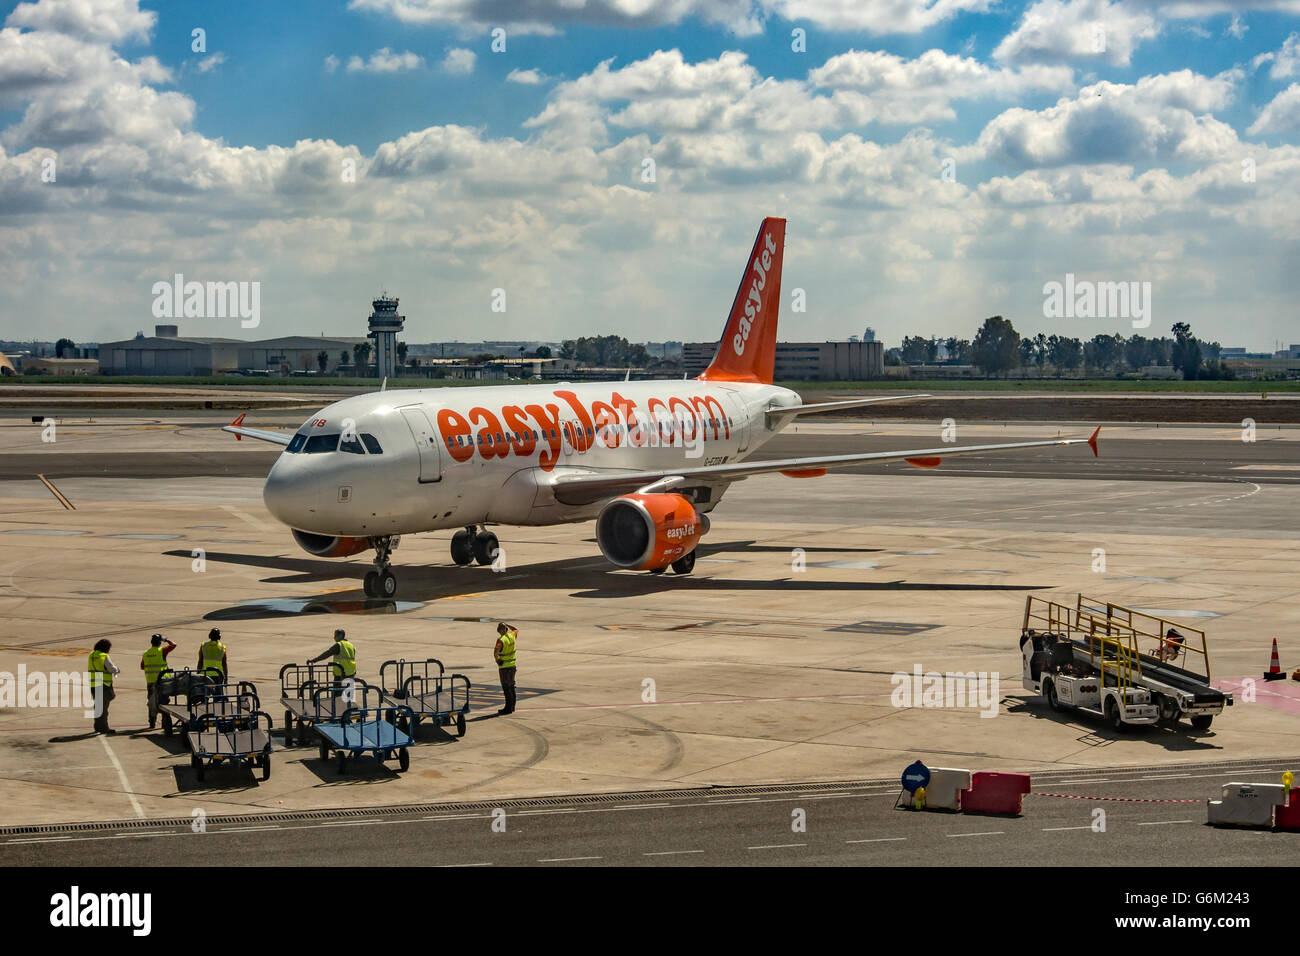 EASYJET AIRCRAFT:  EasyJet Airbus A319-111 on the runway at Seville airport - Stock Image